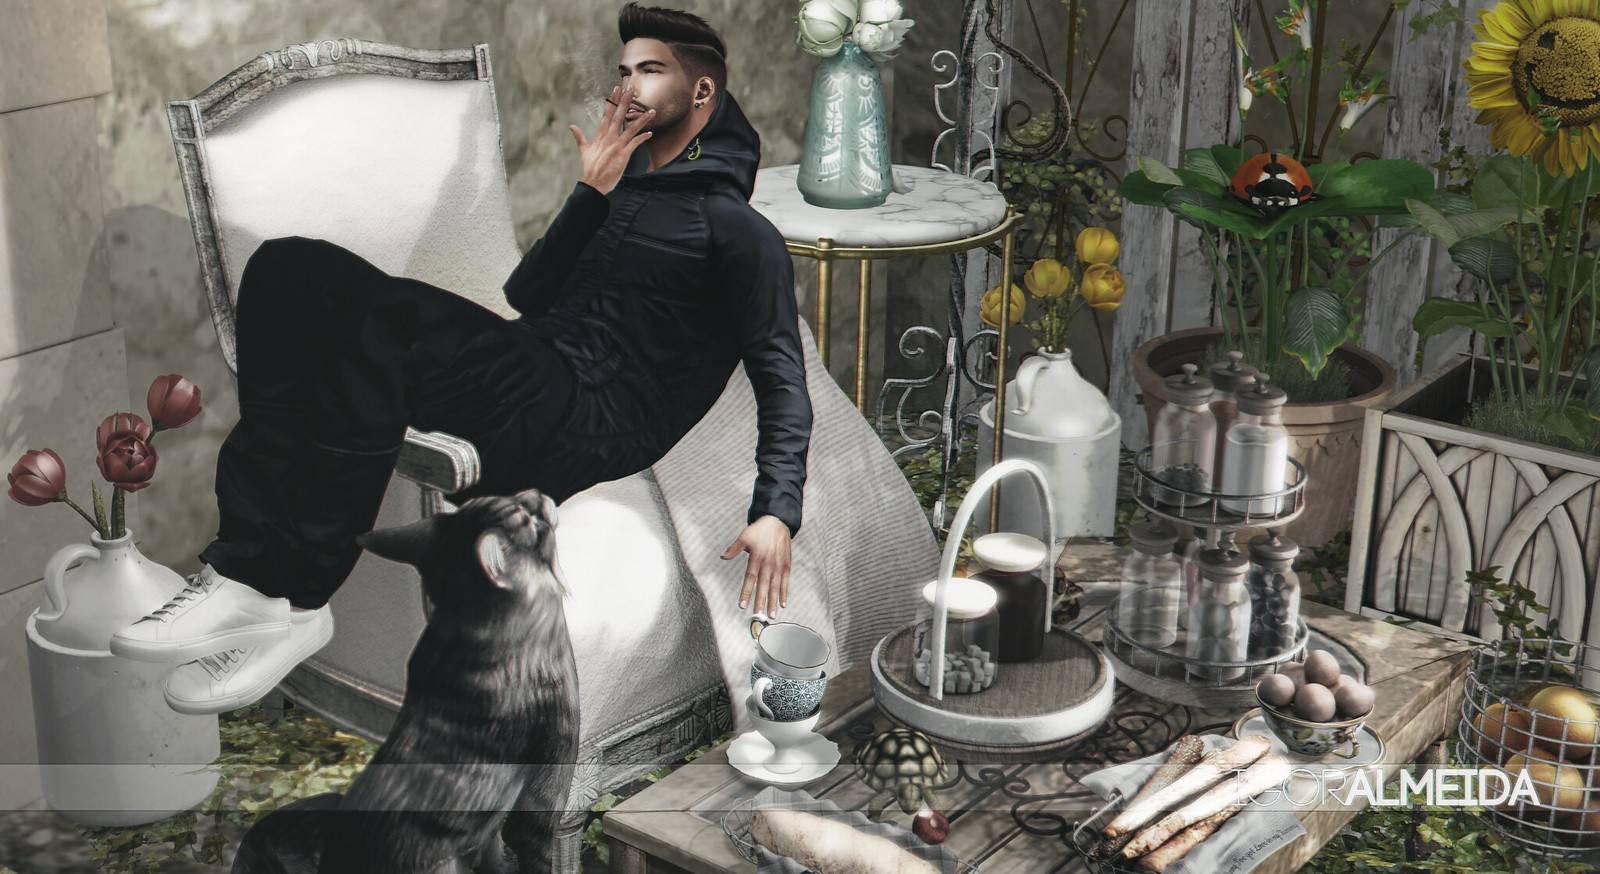 POST🔥 #1168 | RK Poses | Nutmeg | JIAN | Merak | Dahlia | ILLUMINATE | Granola | hive | Ariskea | FaMESHed | Collabor88 | Shiny Shabby | MGmen's |